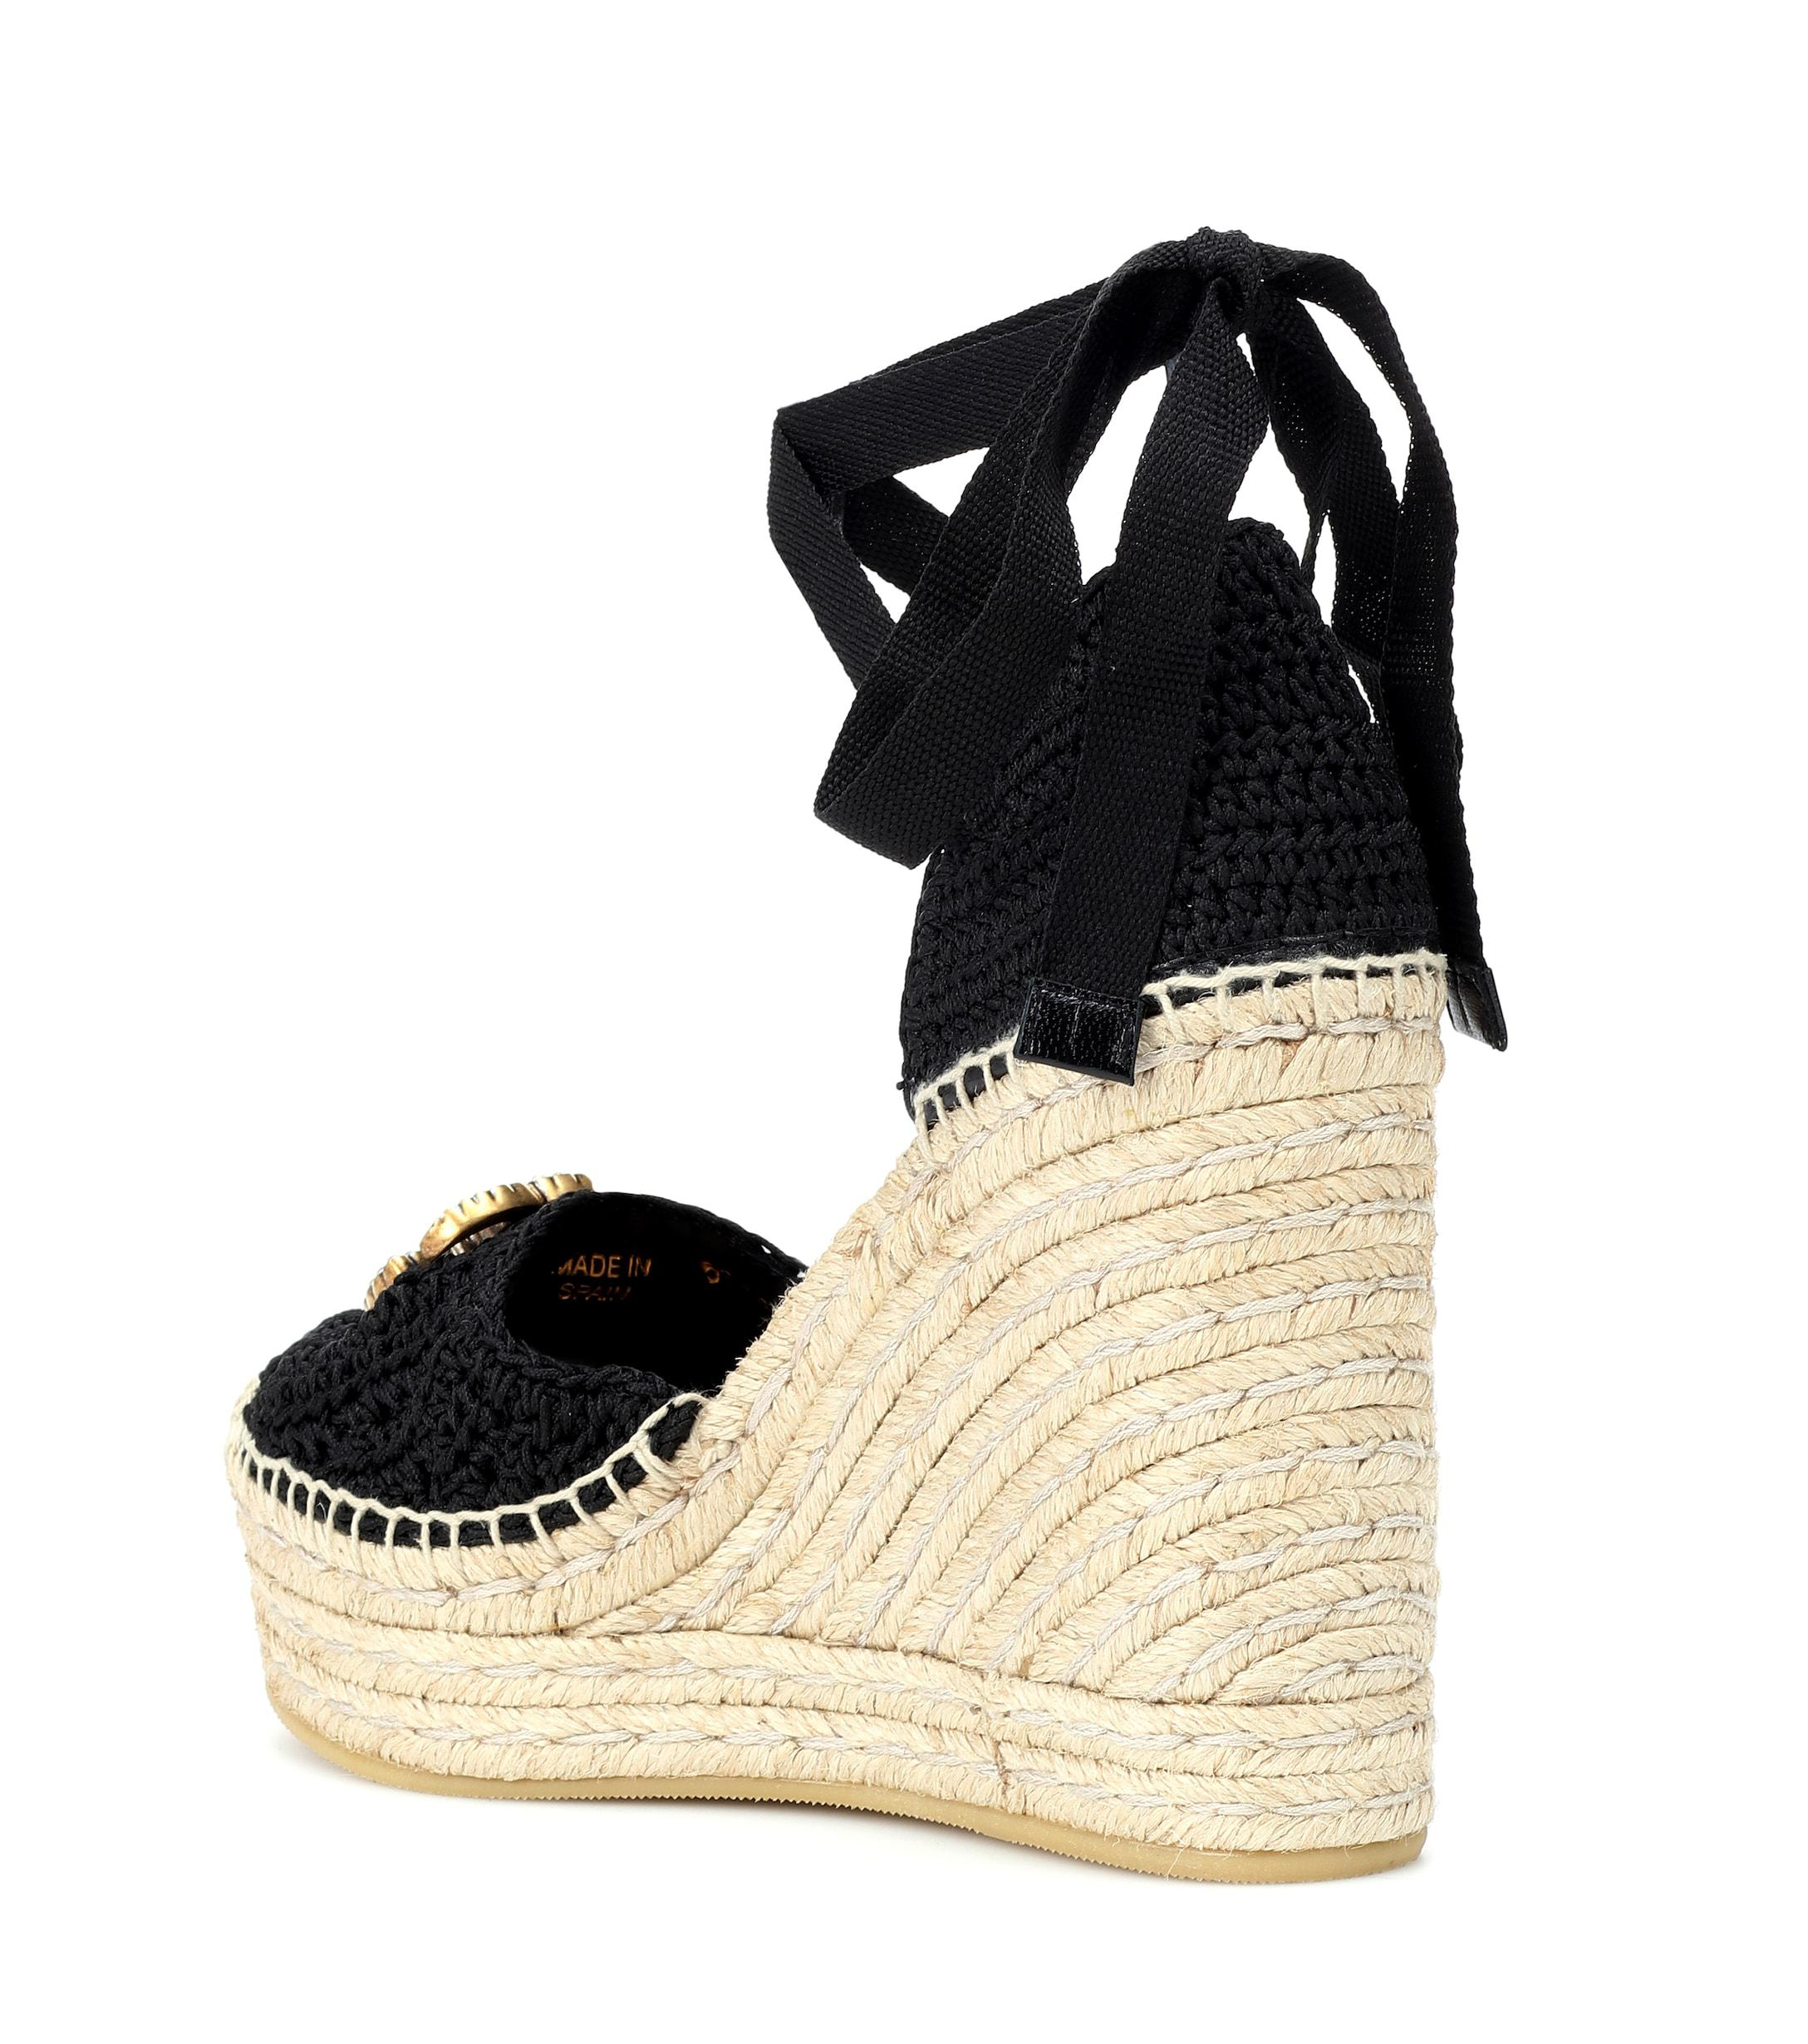 cba8e52d74a6 Gucci - Black Crochet Wedge Espadrilles - Lyst. View fullscreen